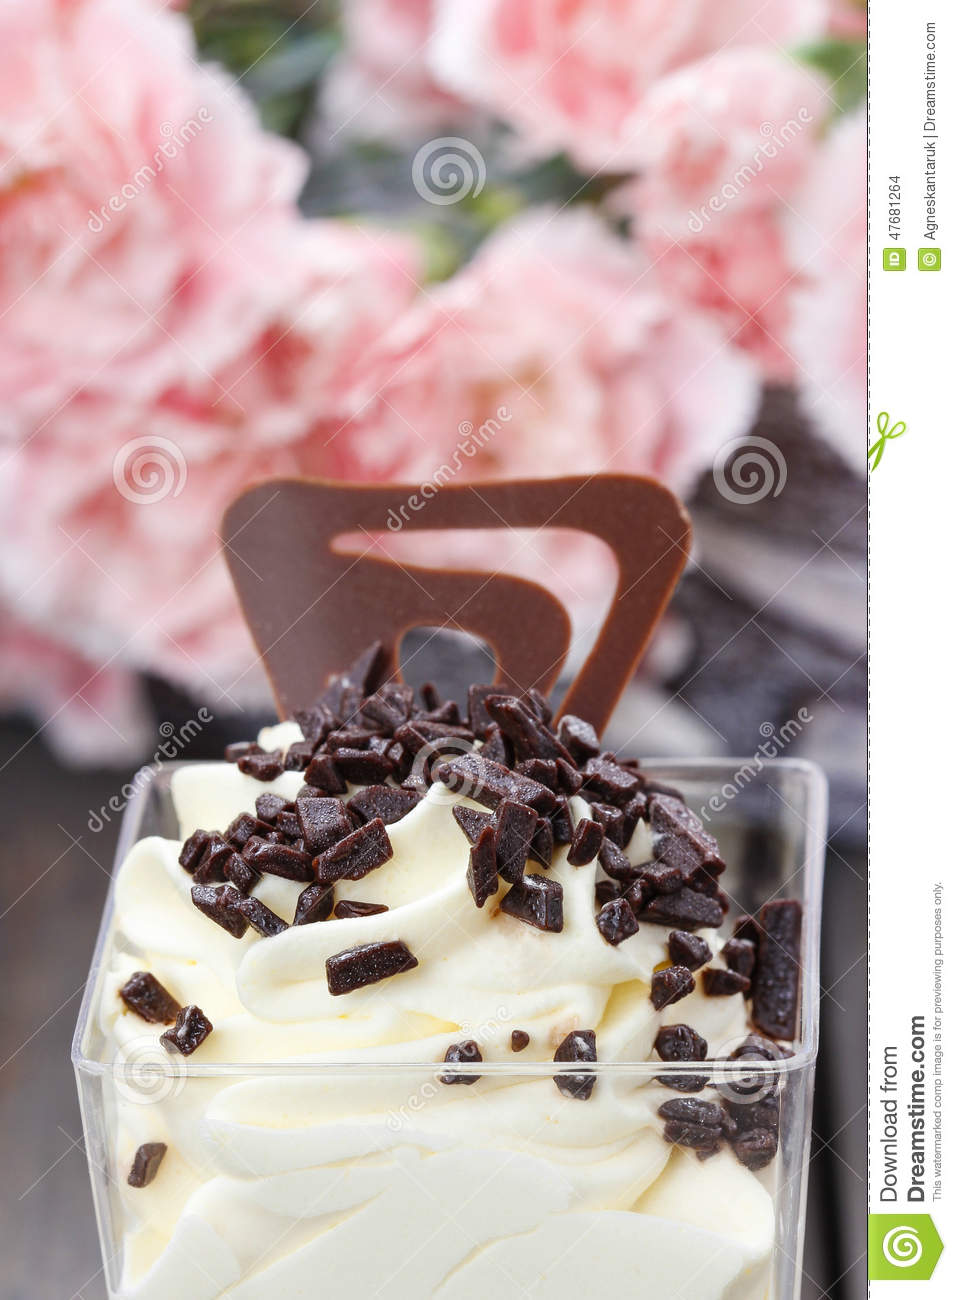 Vanilla Ice Cream With Chocolate Sprinkles Stock Photo ...